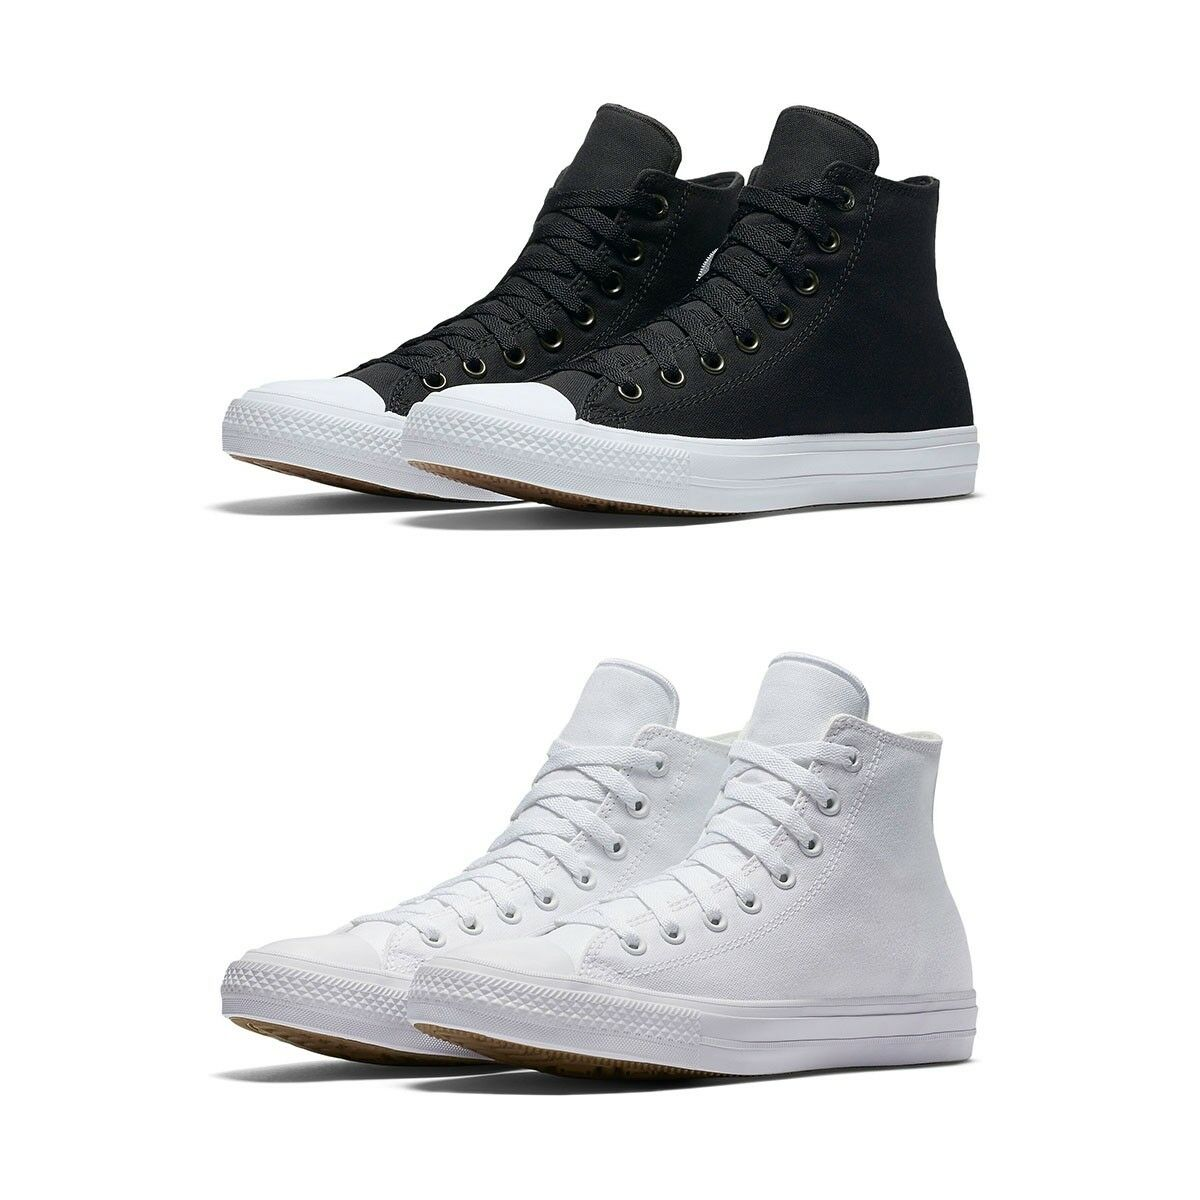 New All Converse Chuck Taylor All New Star II High Top Canvas Shoes נעלי אולסטאר גבוה 668465